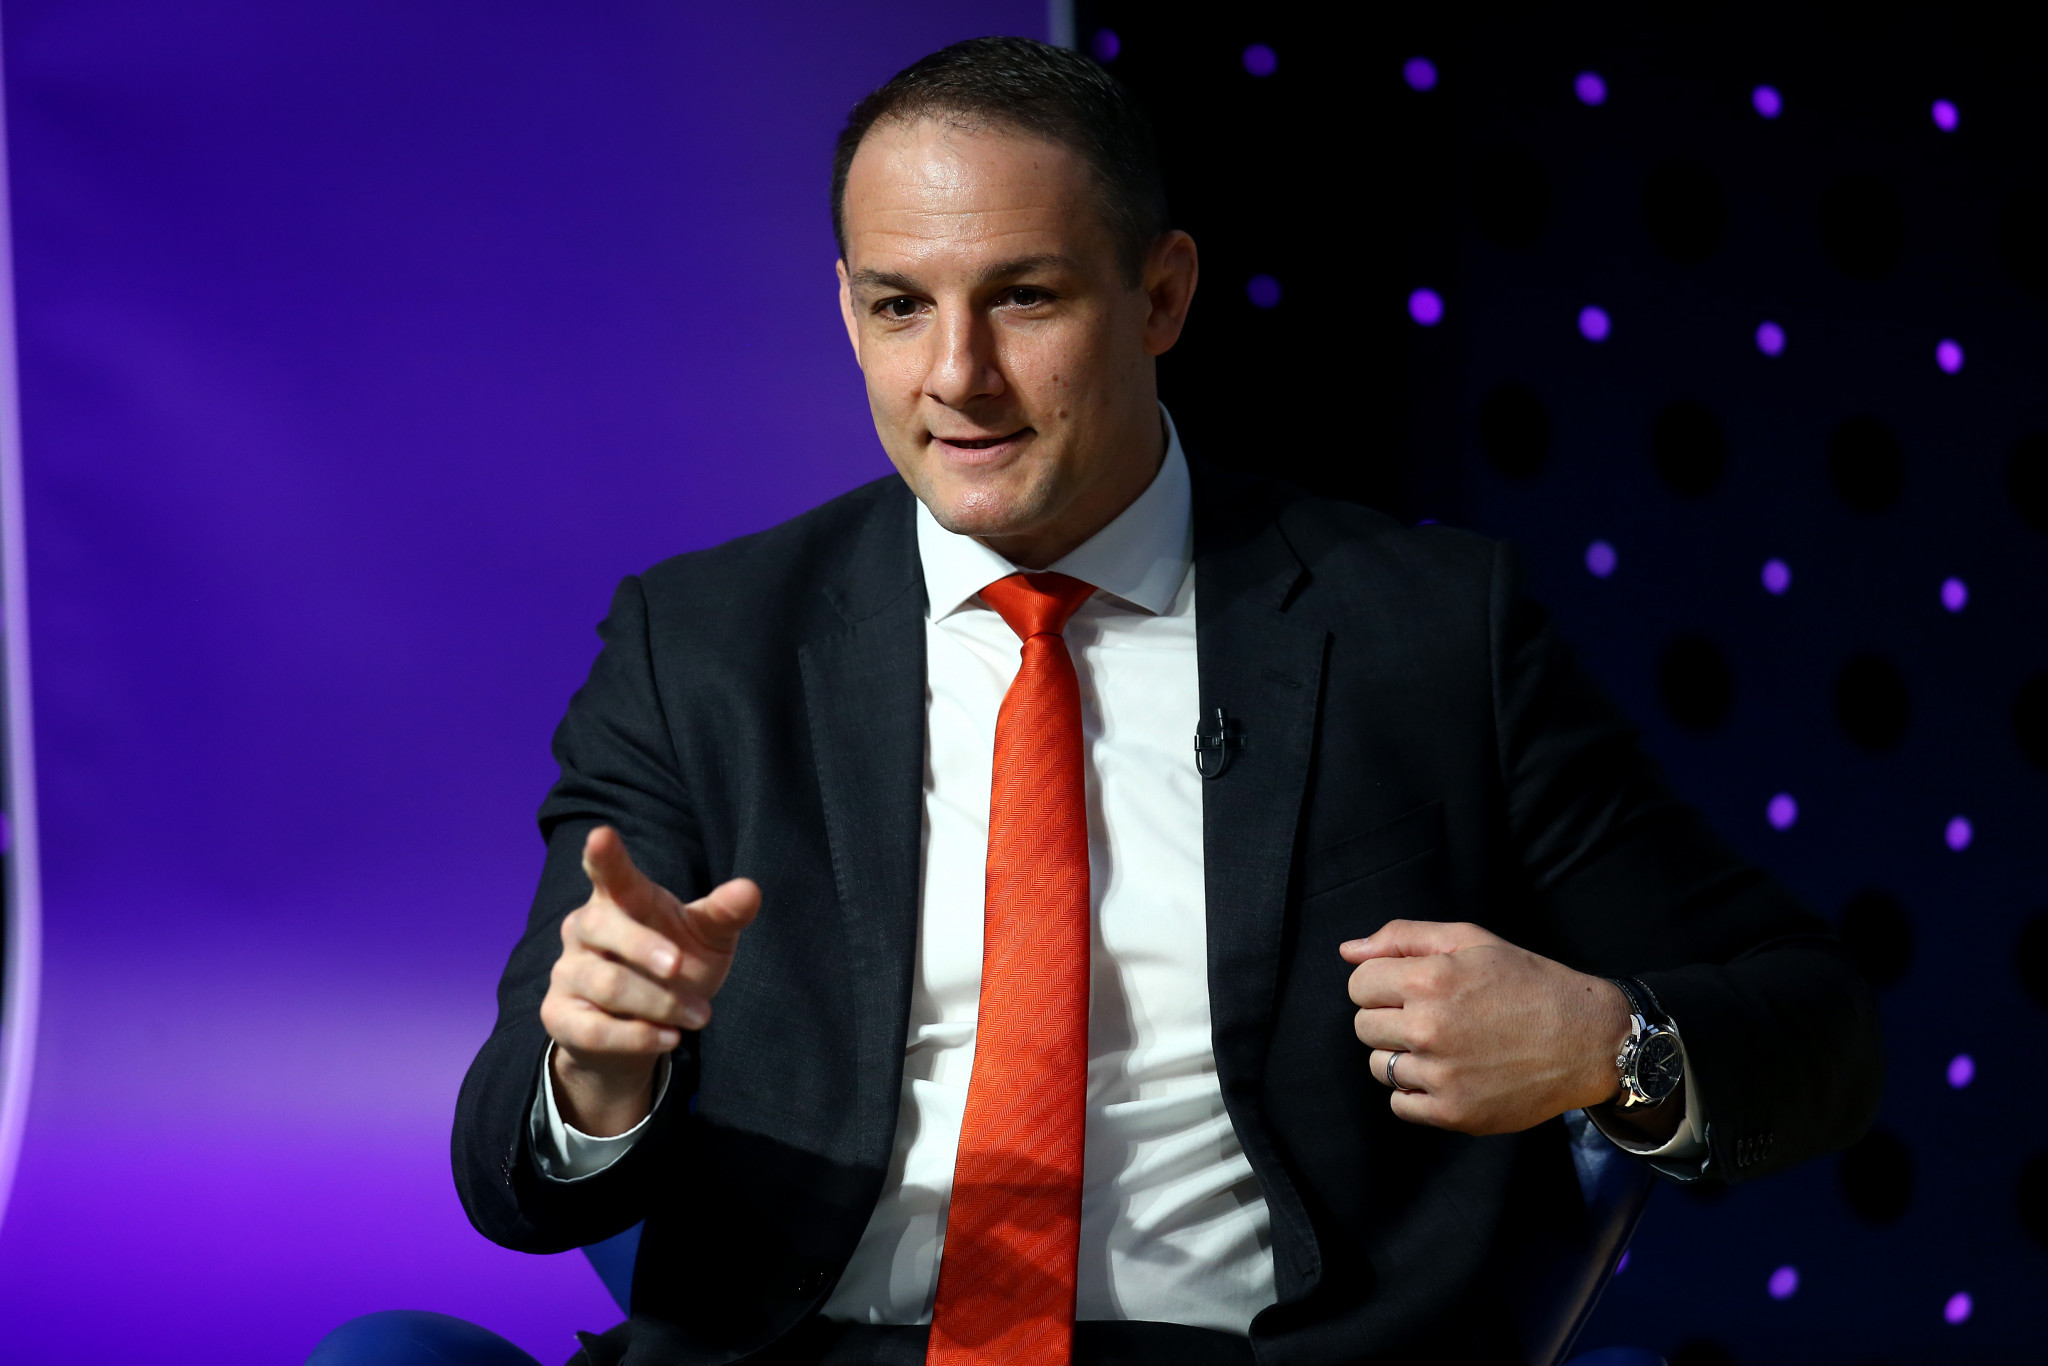 David Grevemberg, who had been Managing Director of the Commonwealth Games Federation since 2014, resigned in March © Getty Images